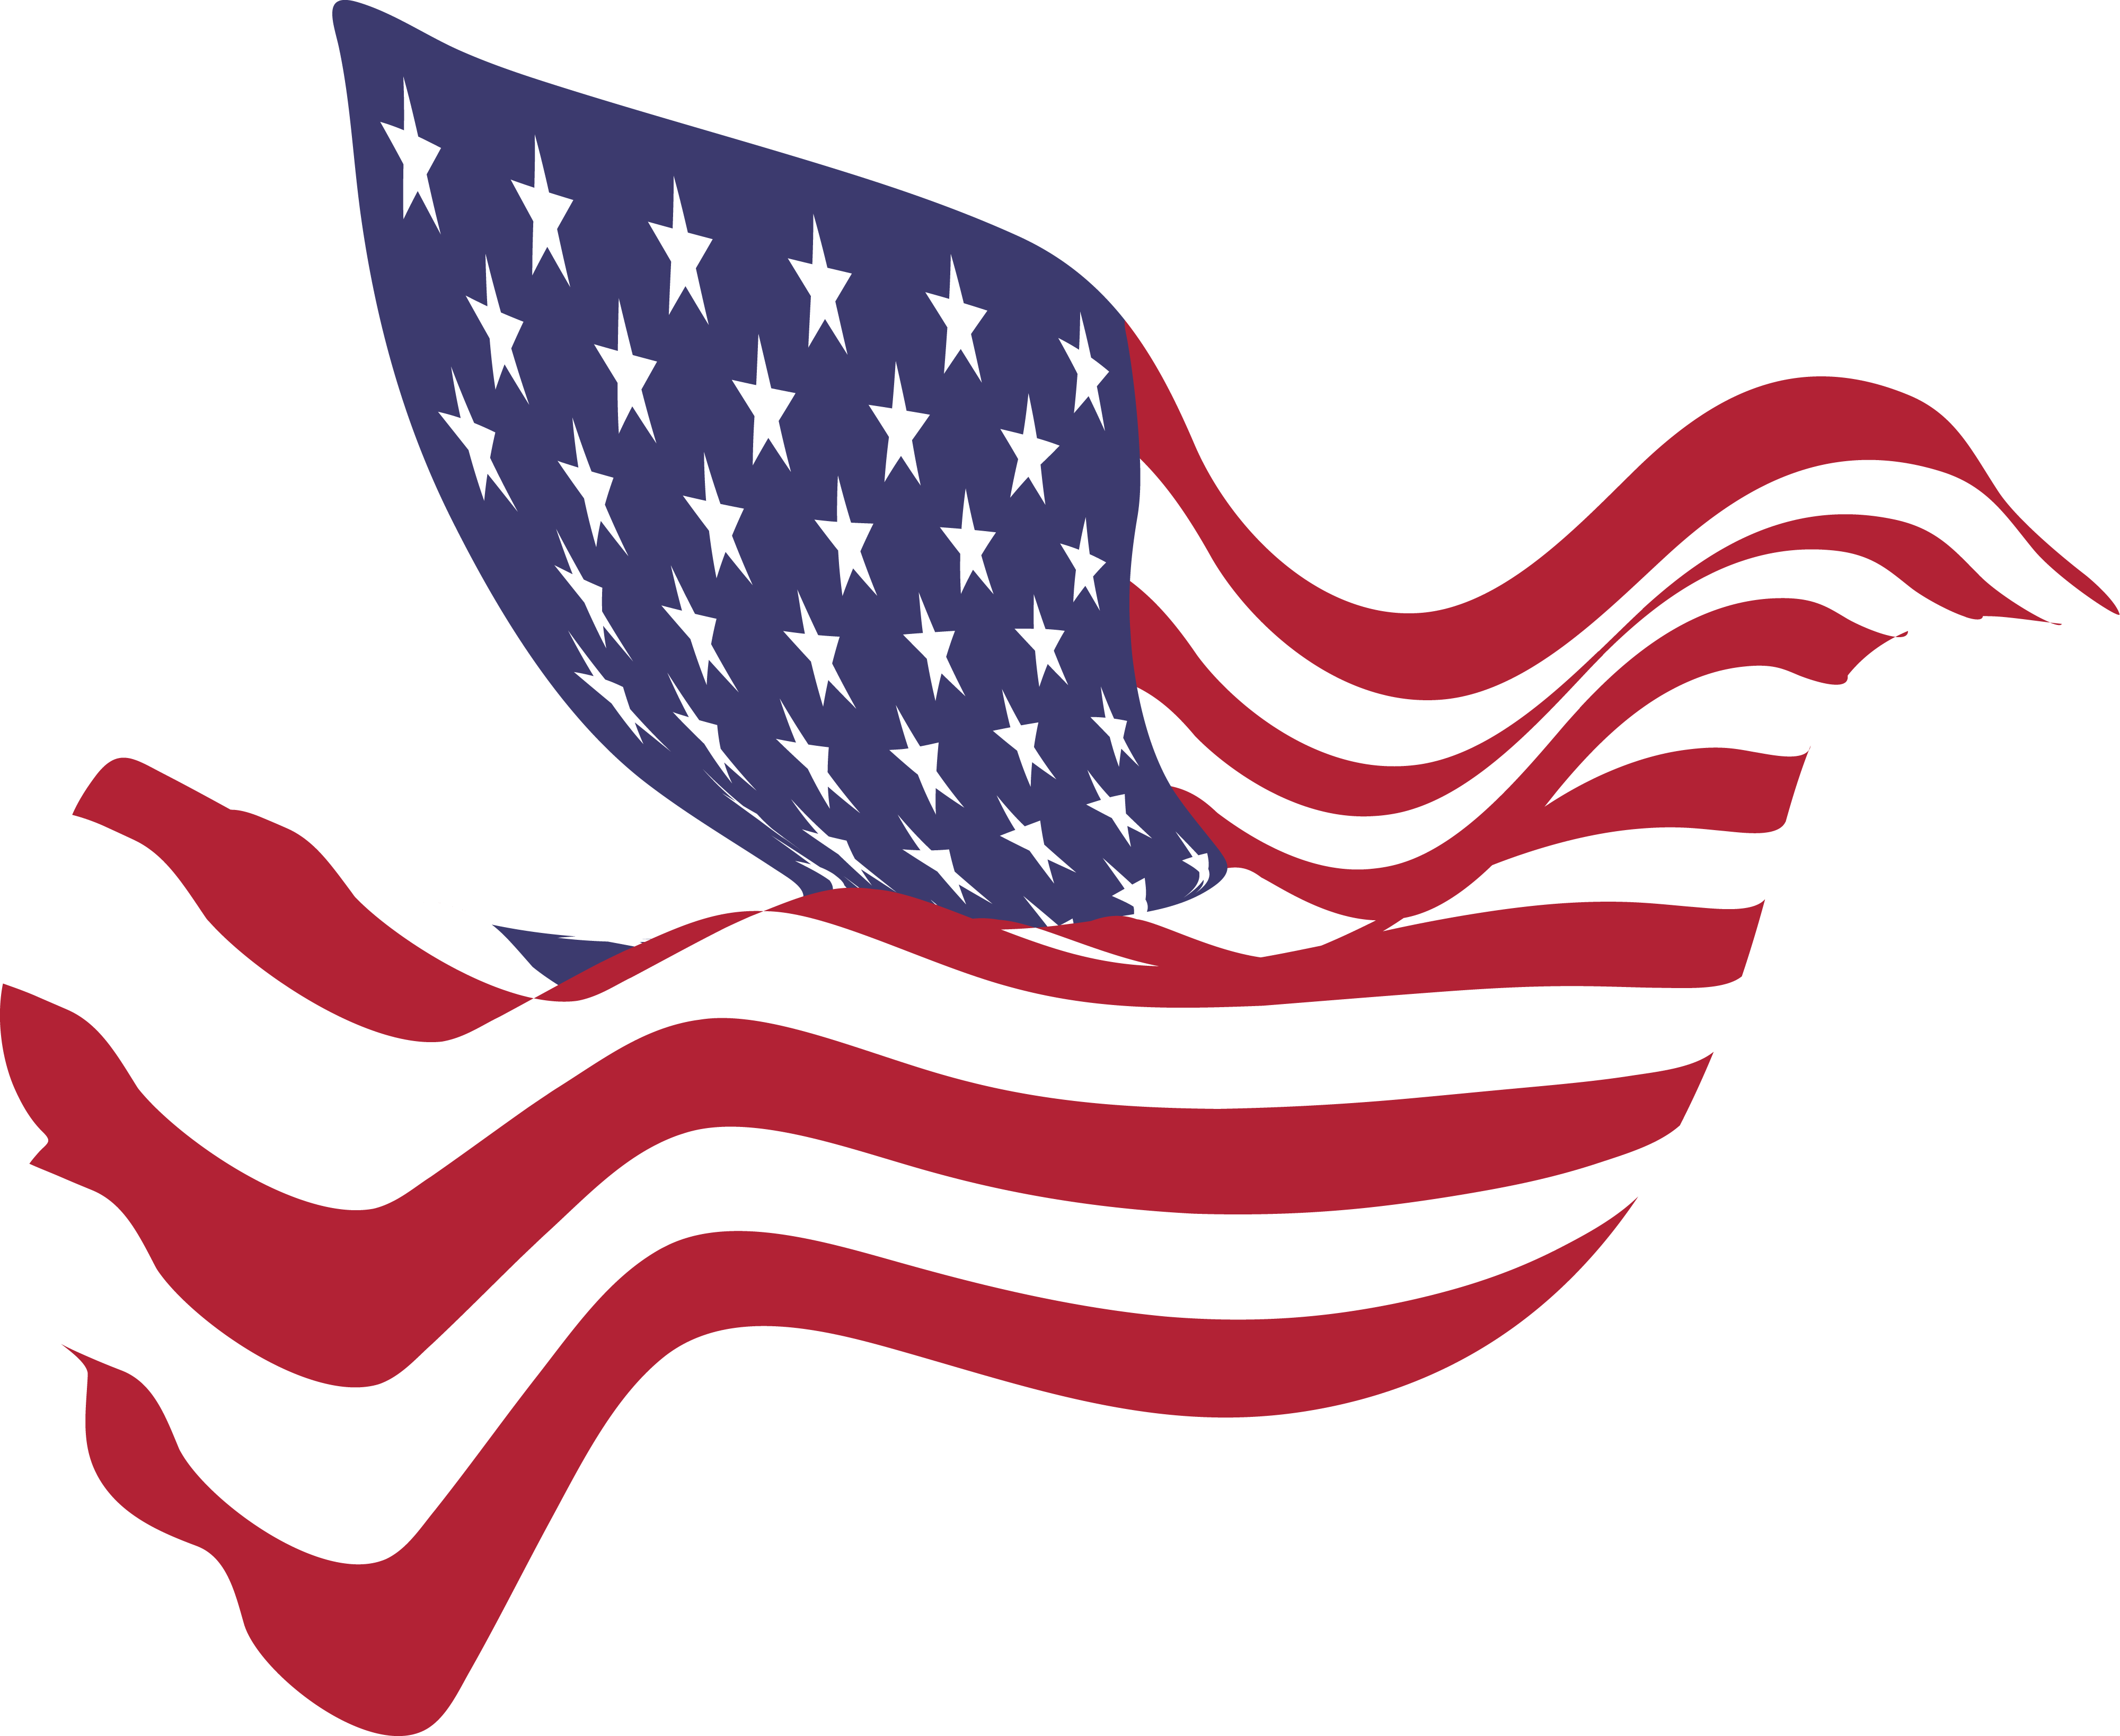 free clipart of a peace dove with an american flag pattern rh free clipartof com us flag free clipart american flag border clip art free